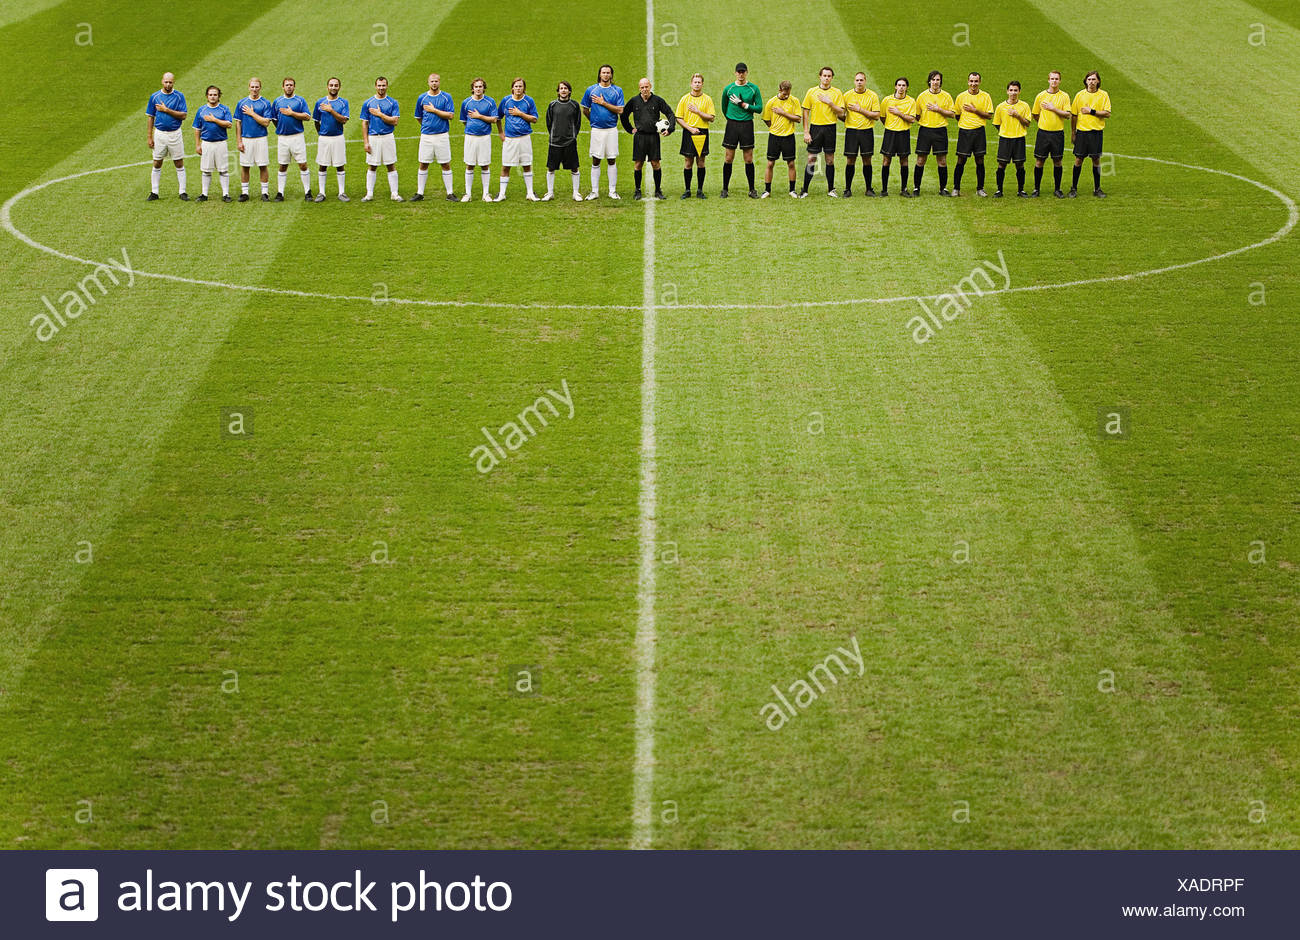 Football teams on the pitch - Stock Image